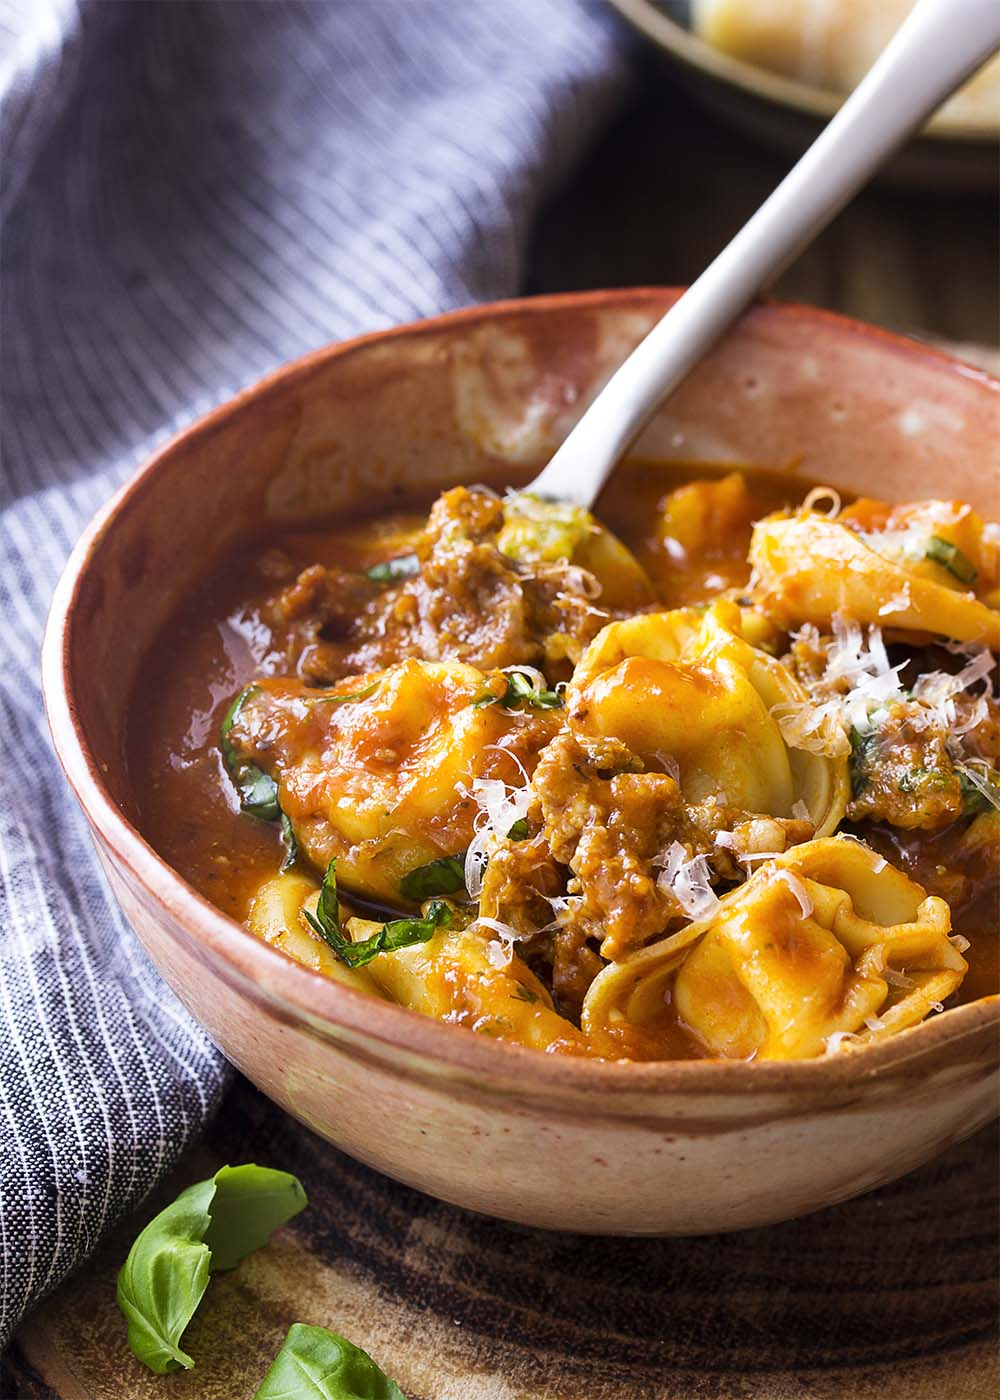 Italian sausage tortellini soup in a brown bowl with a spoon.